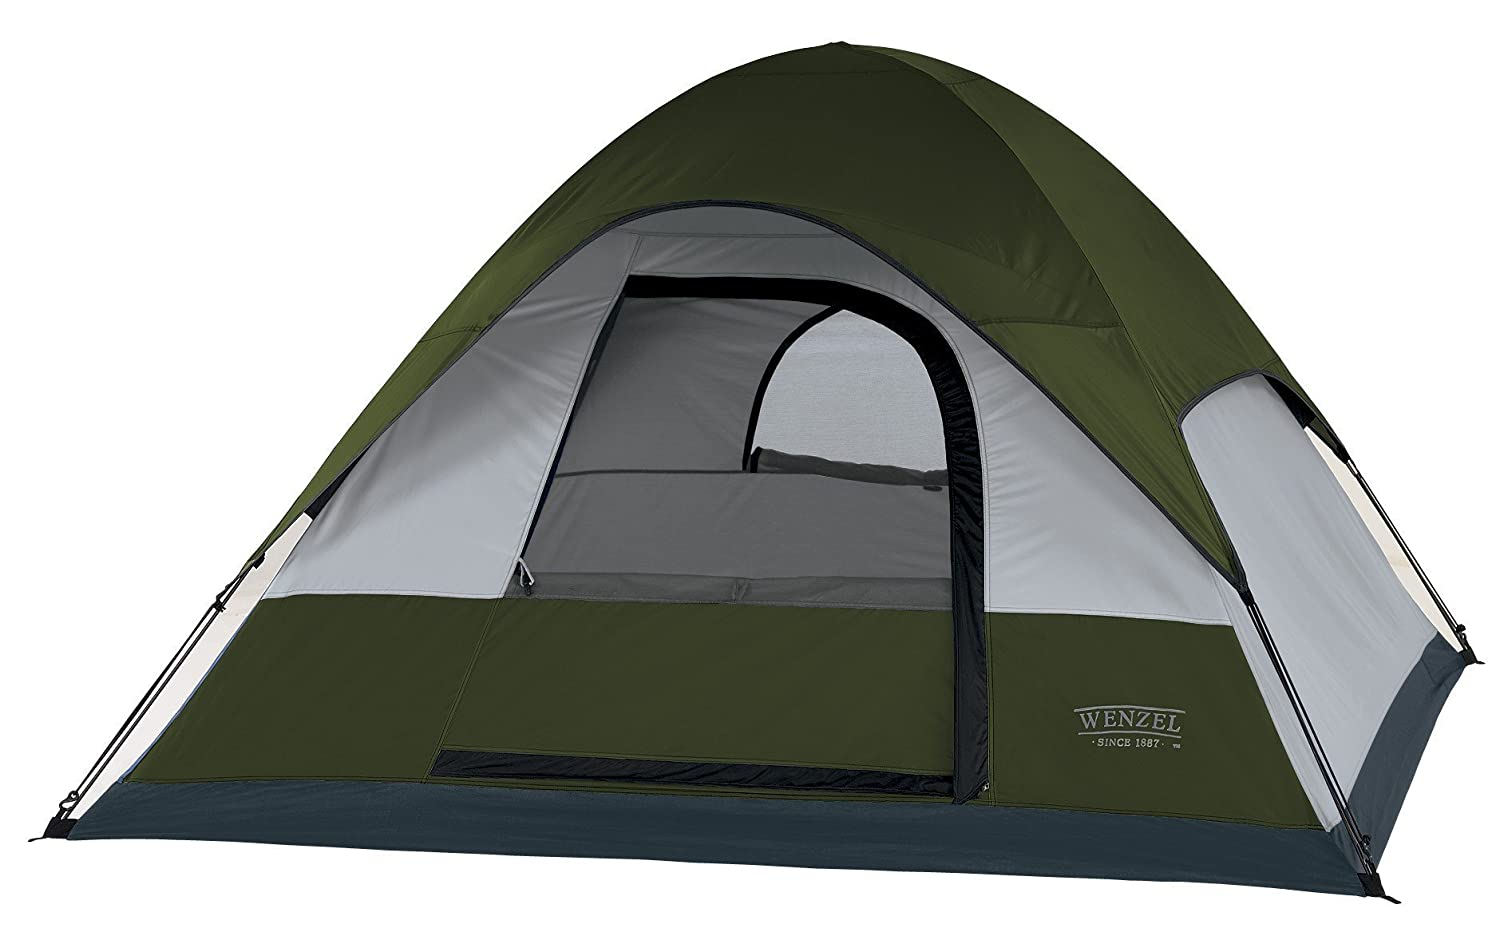 Amazon.com  Wenzel Pinon Sport 7-by 7-Foot Three-Person Dome Tent  Sports u0026 Outdoors  sc 1 st  Amazon.com & Amazon.com : Wenzel Pinon Sport 7-by 7-Foot Three-Person Dome Tent ...